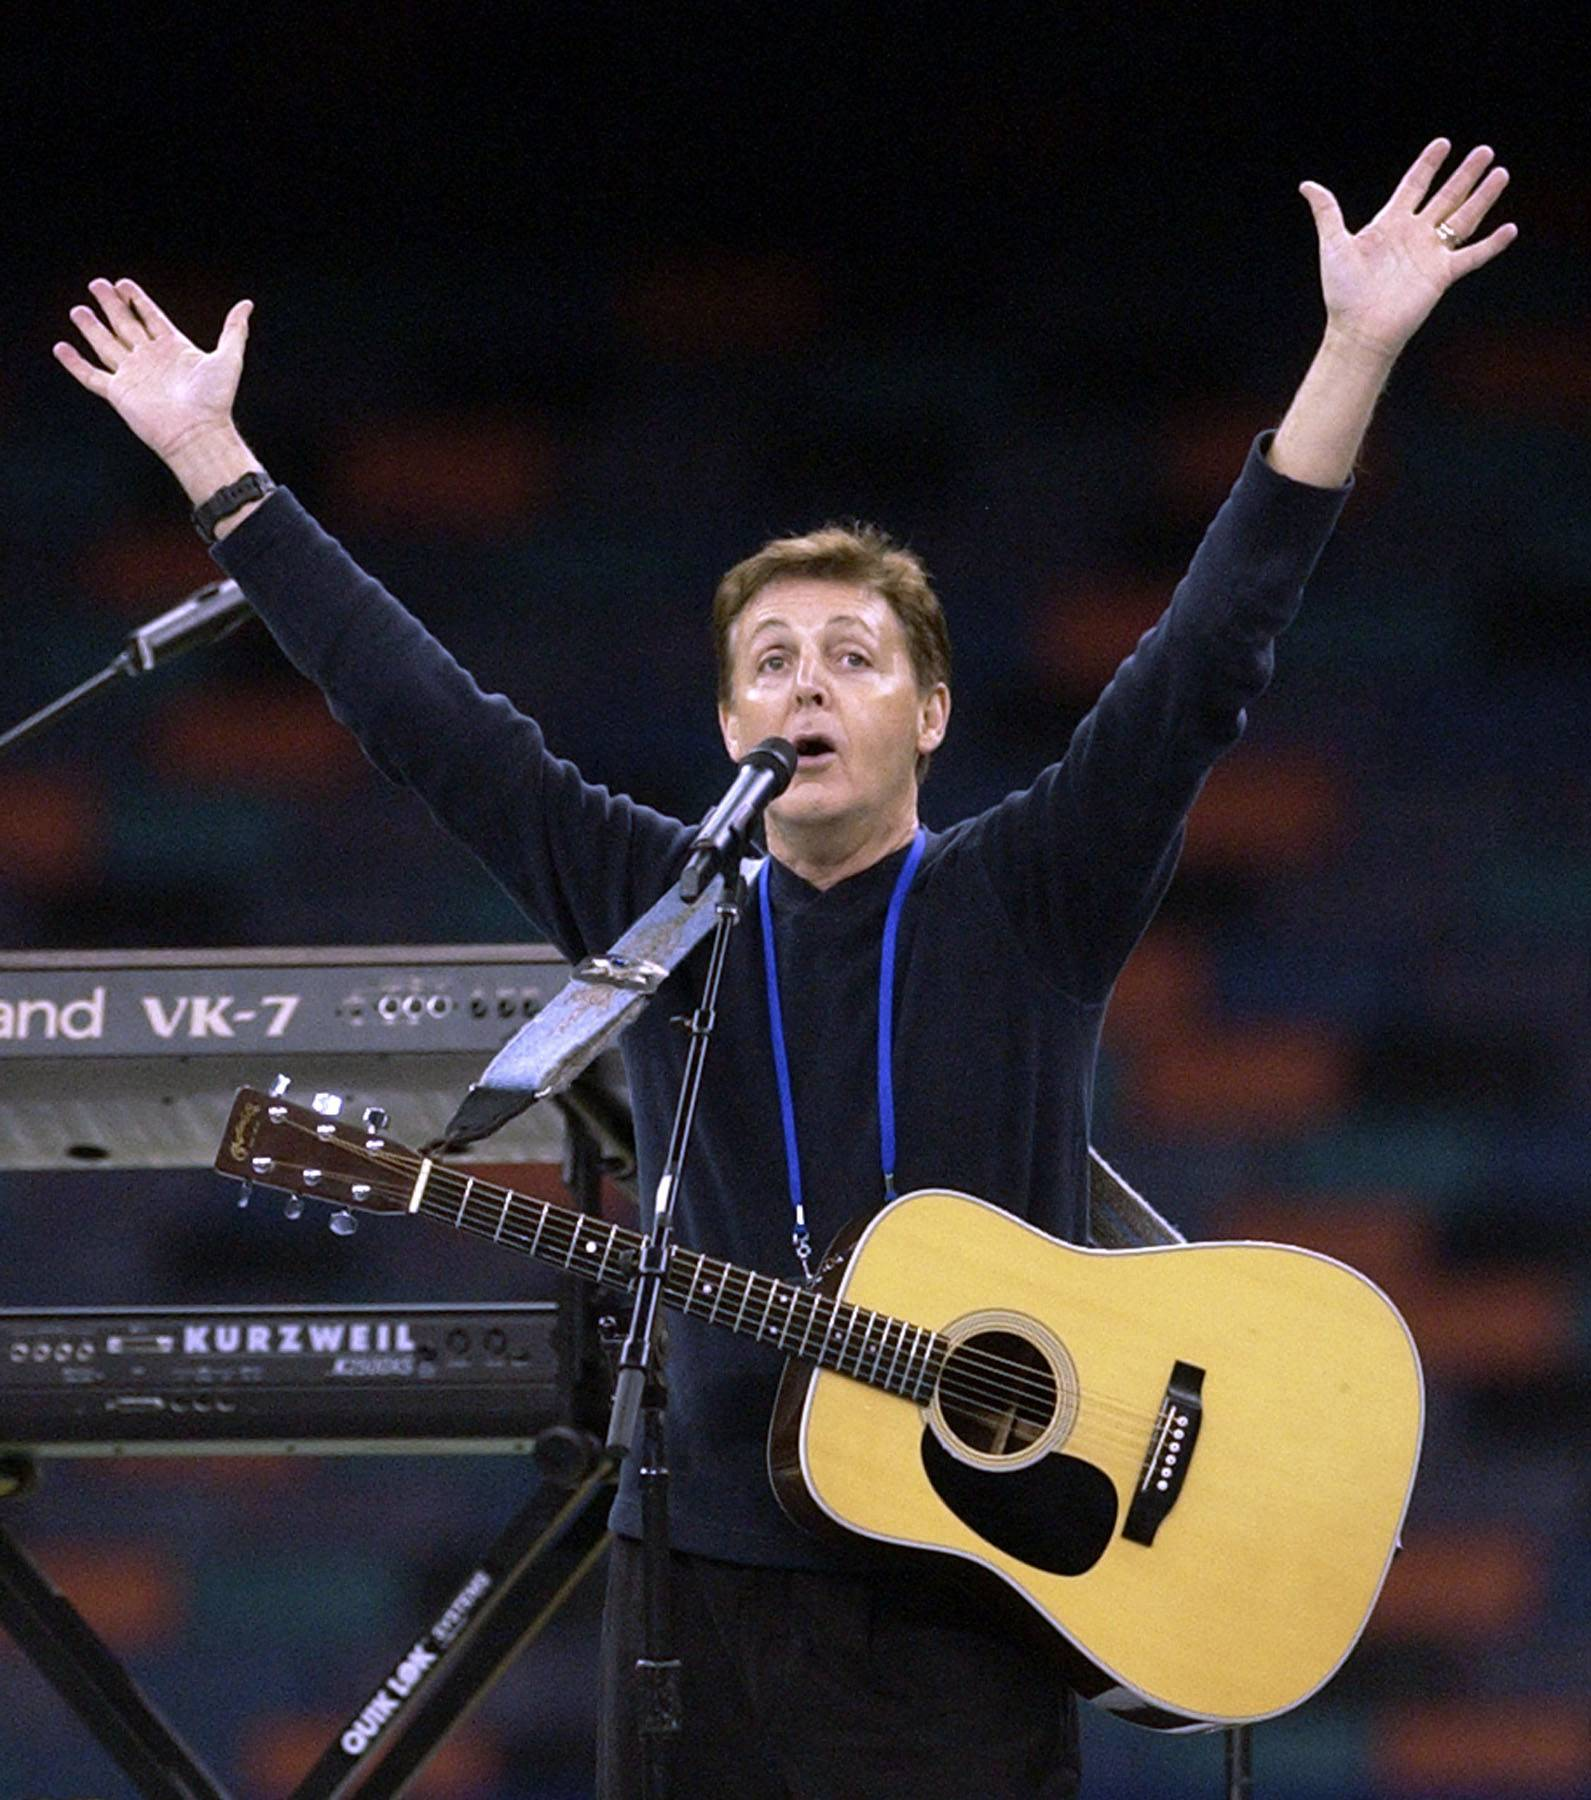 Former Beatle Paul McCartney returns to Chicago next week for a show at the United Center.